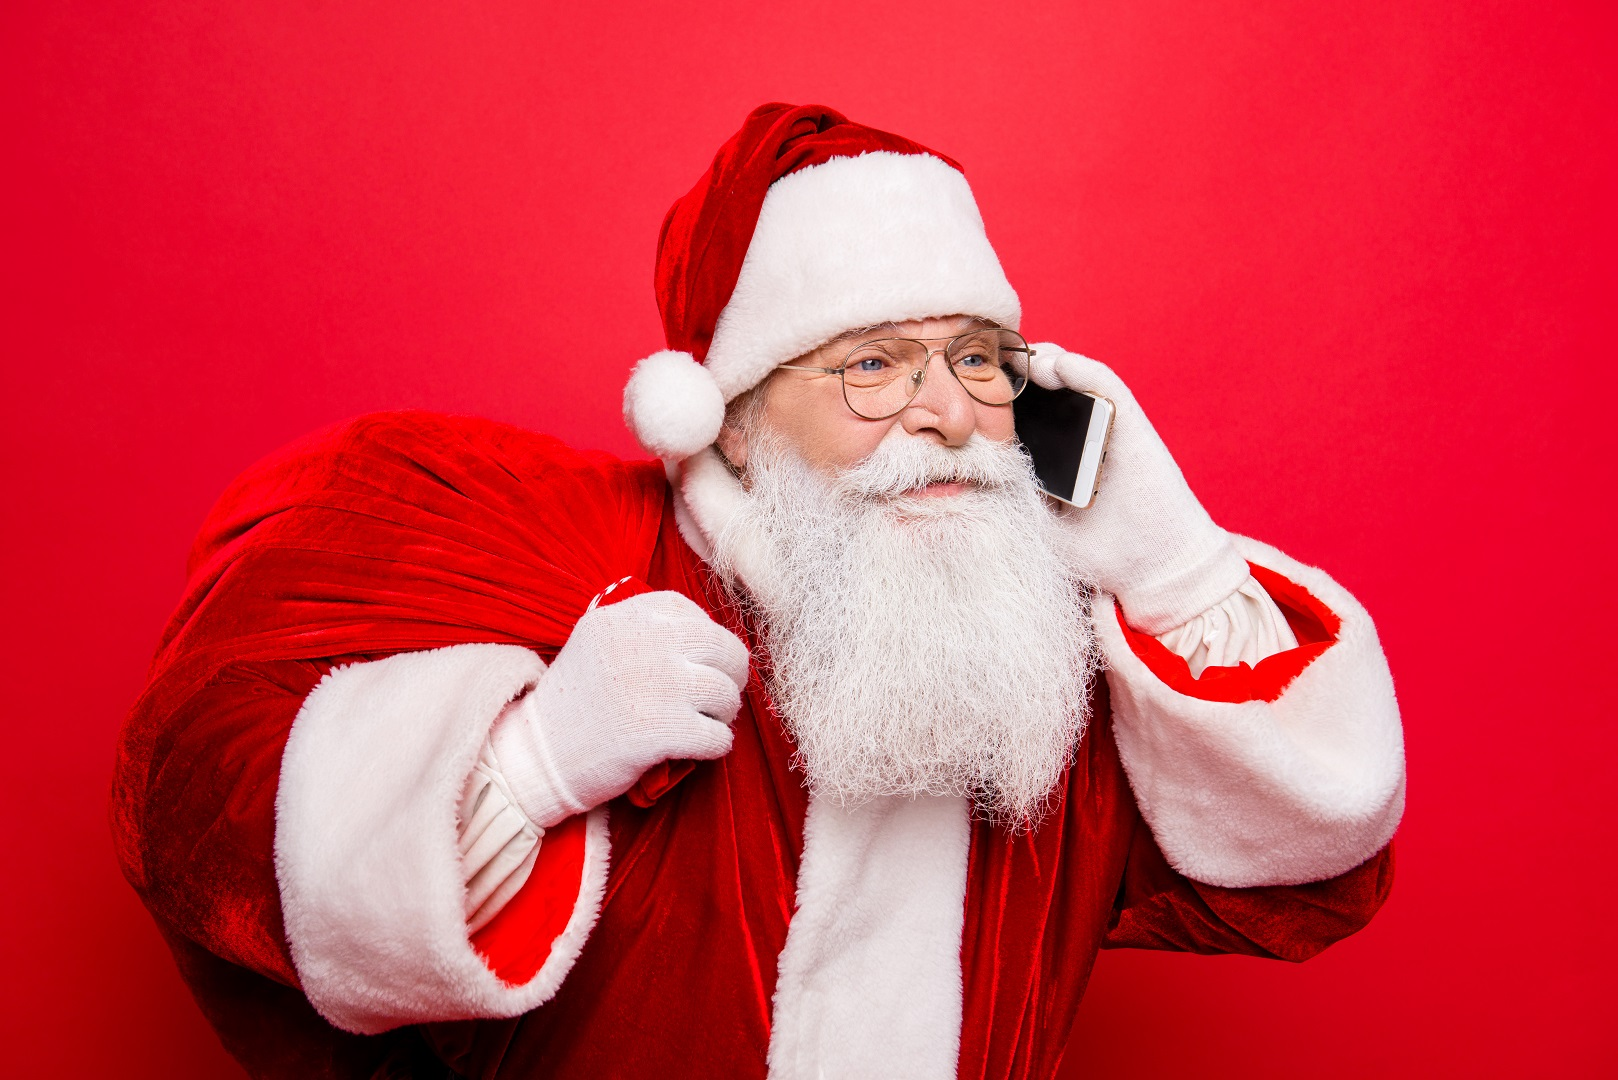 Santa Claus Talking on Phone Holding Bag of Presents Red